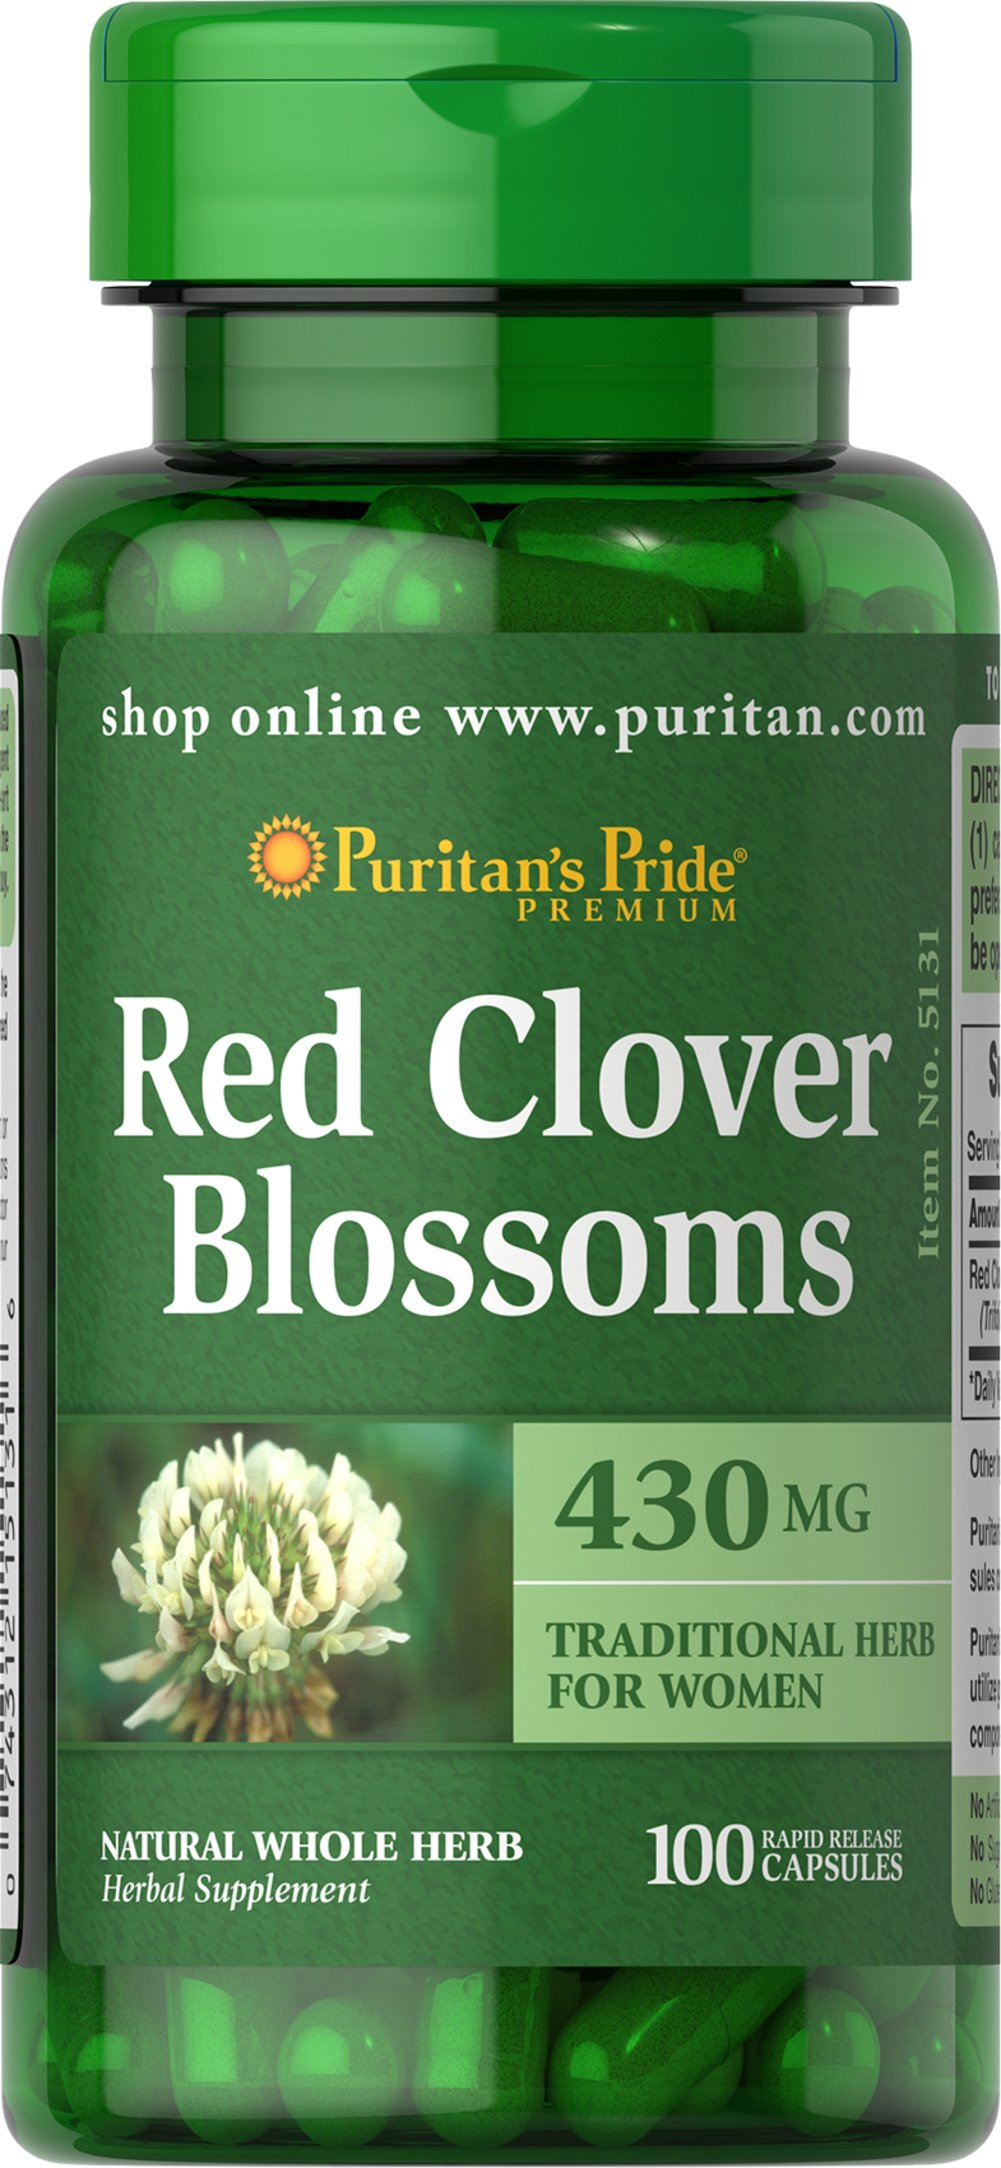 Red Clover Blossoms 430 mg <p>Red Clover is a natural source of plant nutrients that help promote well-being for women.** Red Clover Blossoms help support the physical changes which occur in a woman's body over time.**</p> 100 Capsules 430 mg $7.99